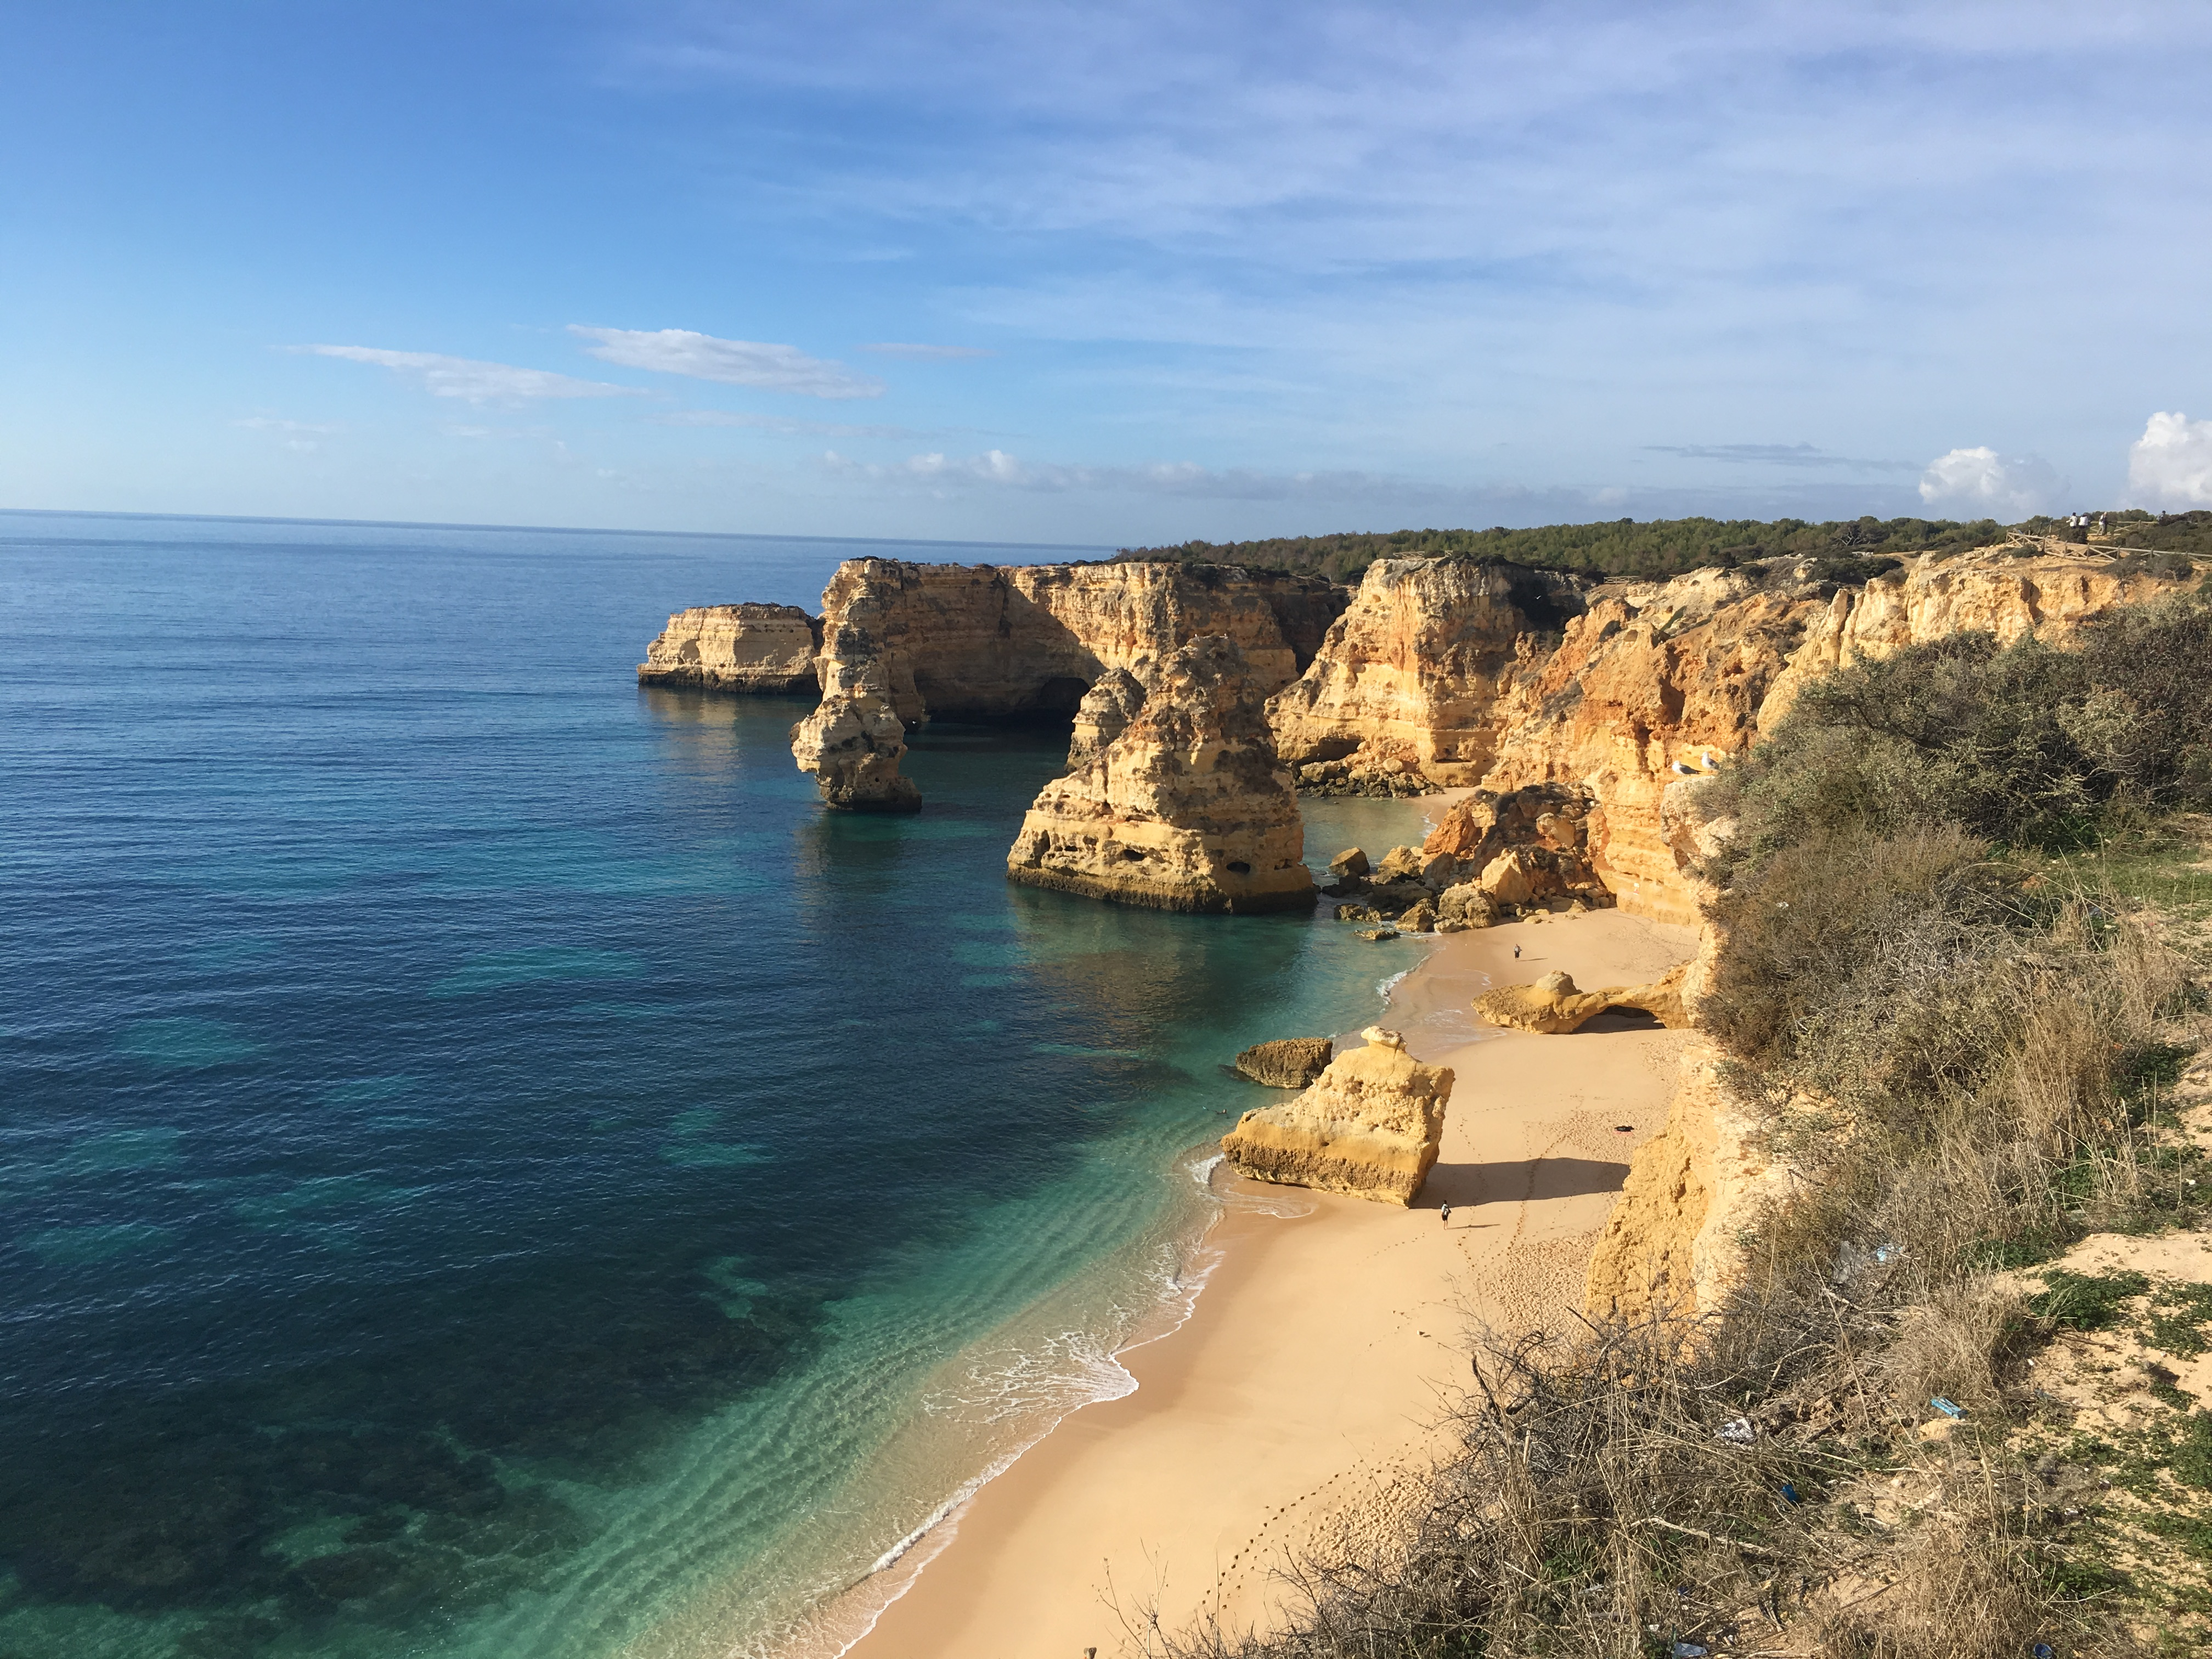 Sea Stack Love — Hiking the Cliffs in the Algarve, Portugal